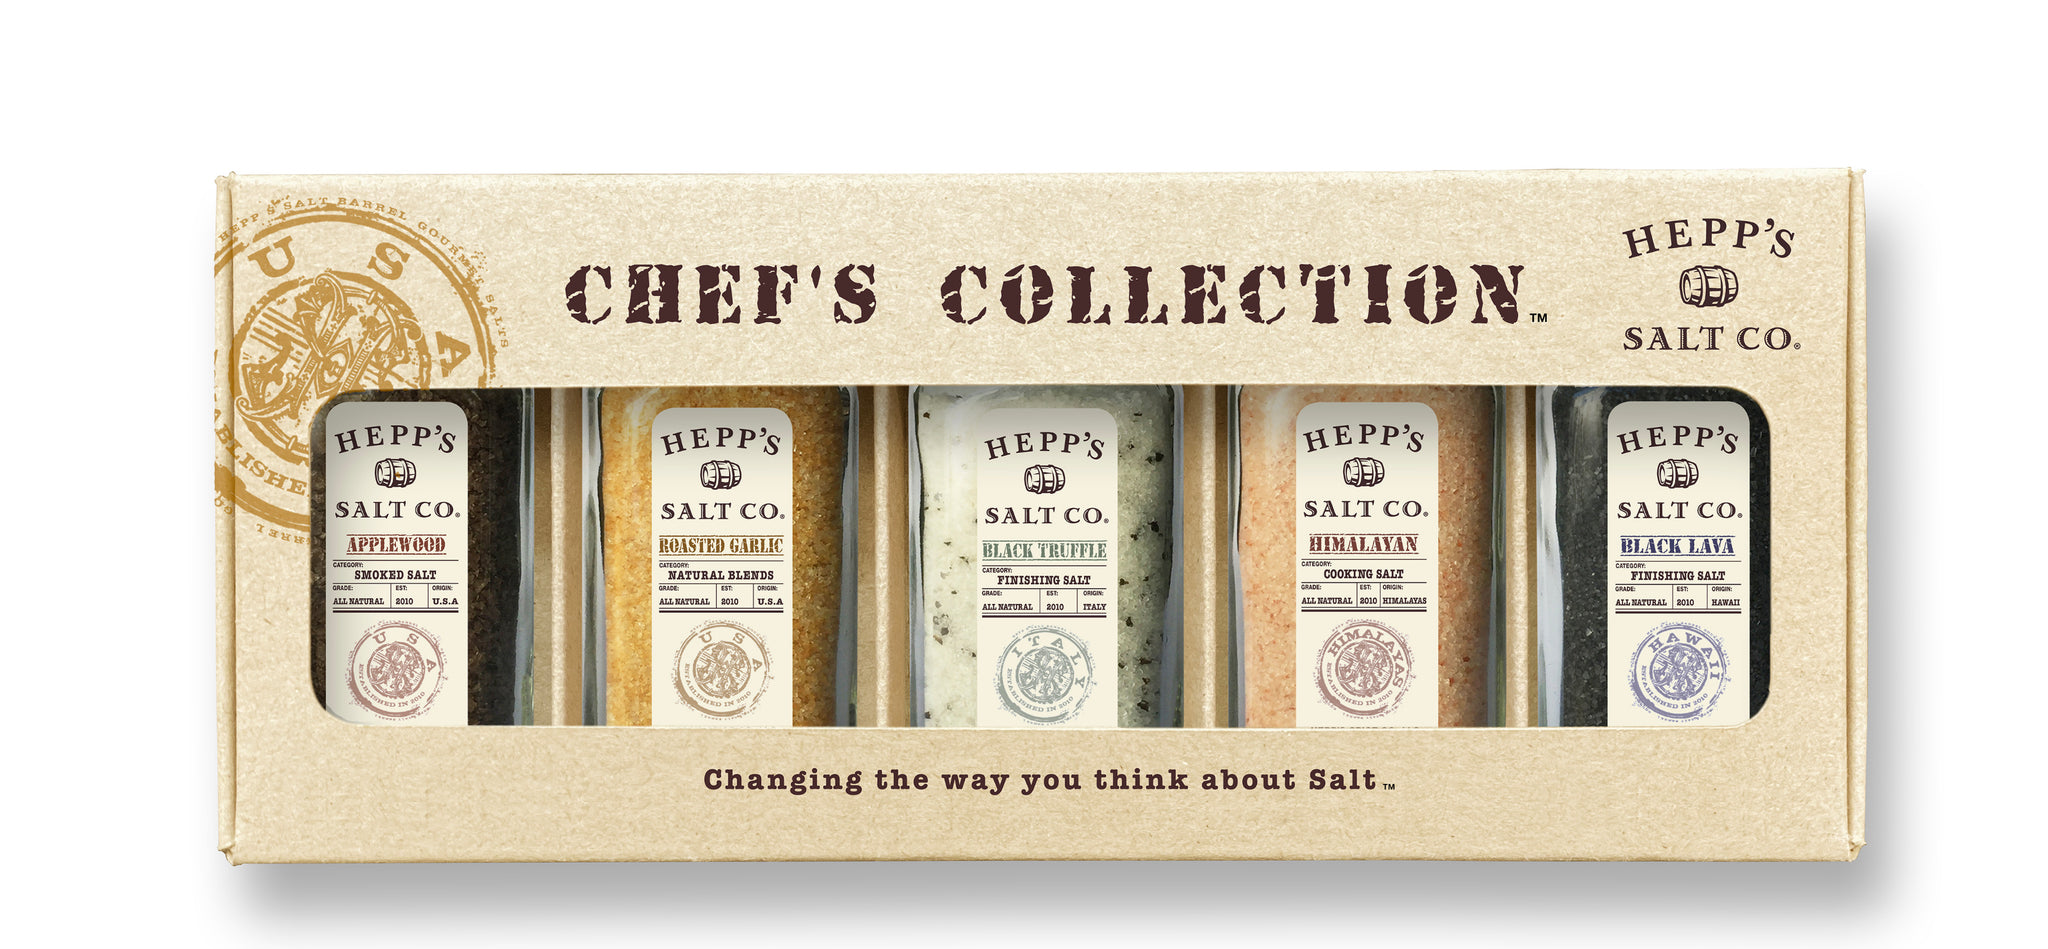 Chef's Collection Gift Box - HEPPS SALT CO.